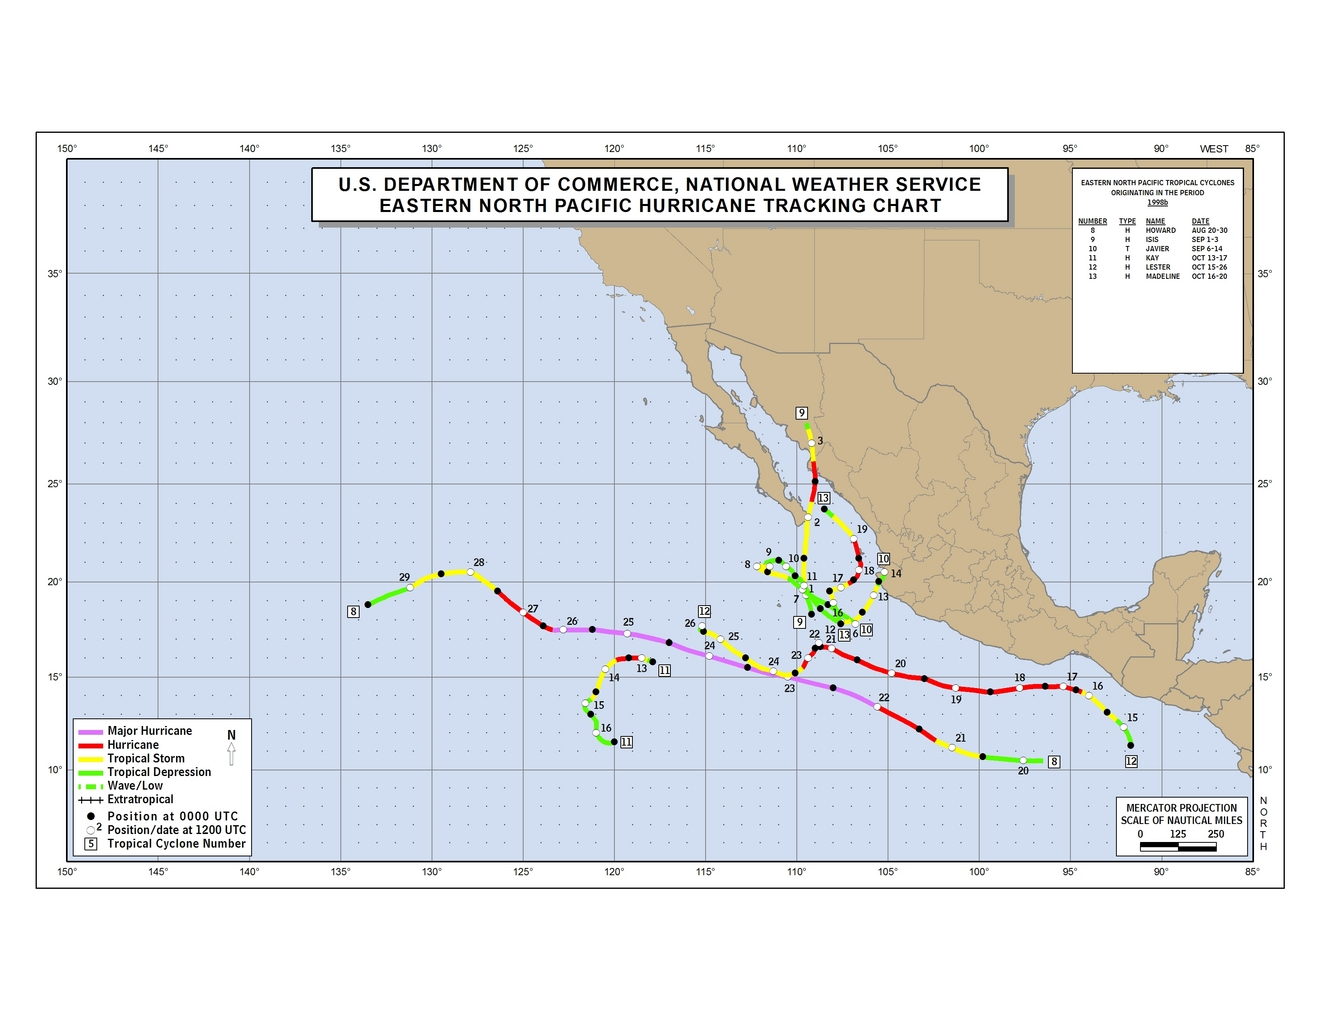 1998 Eastern Pacific hurricane season track map part b